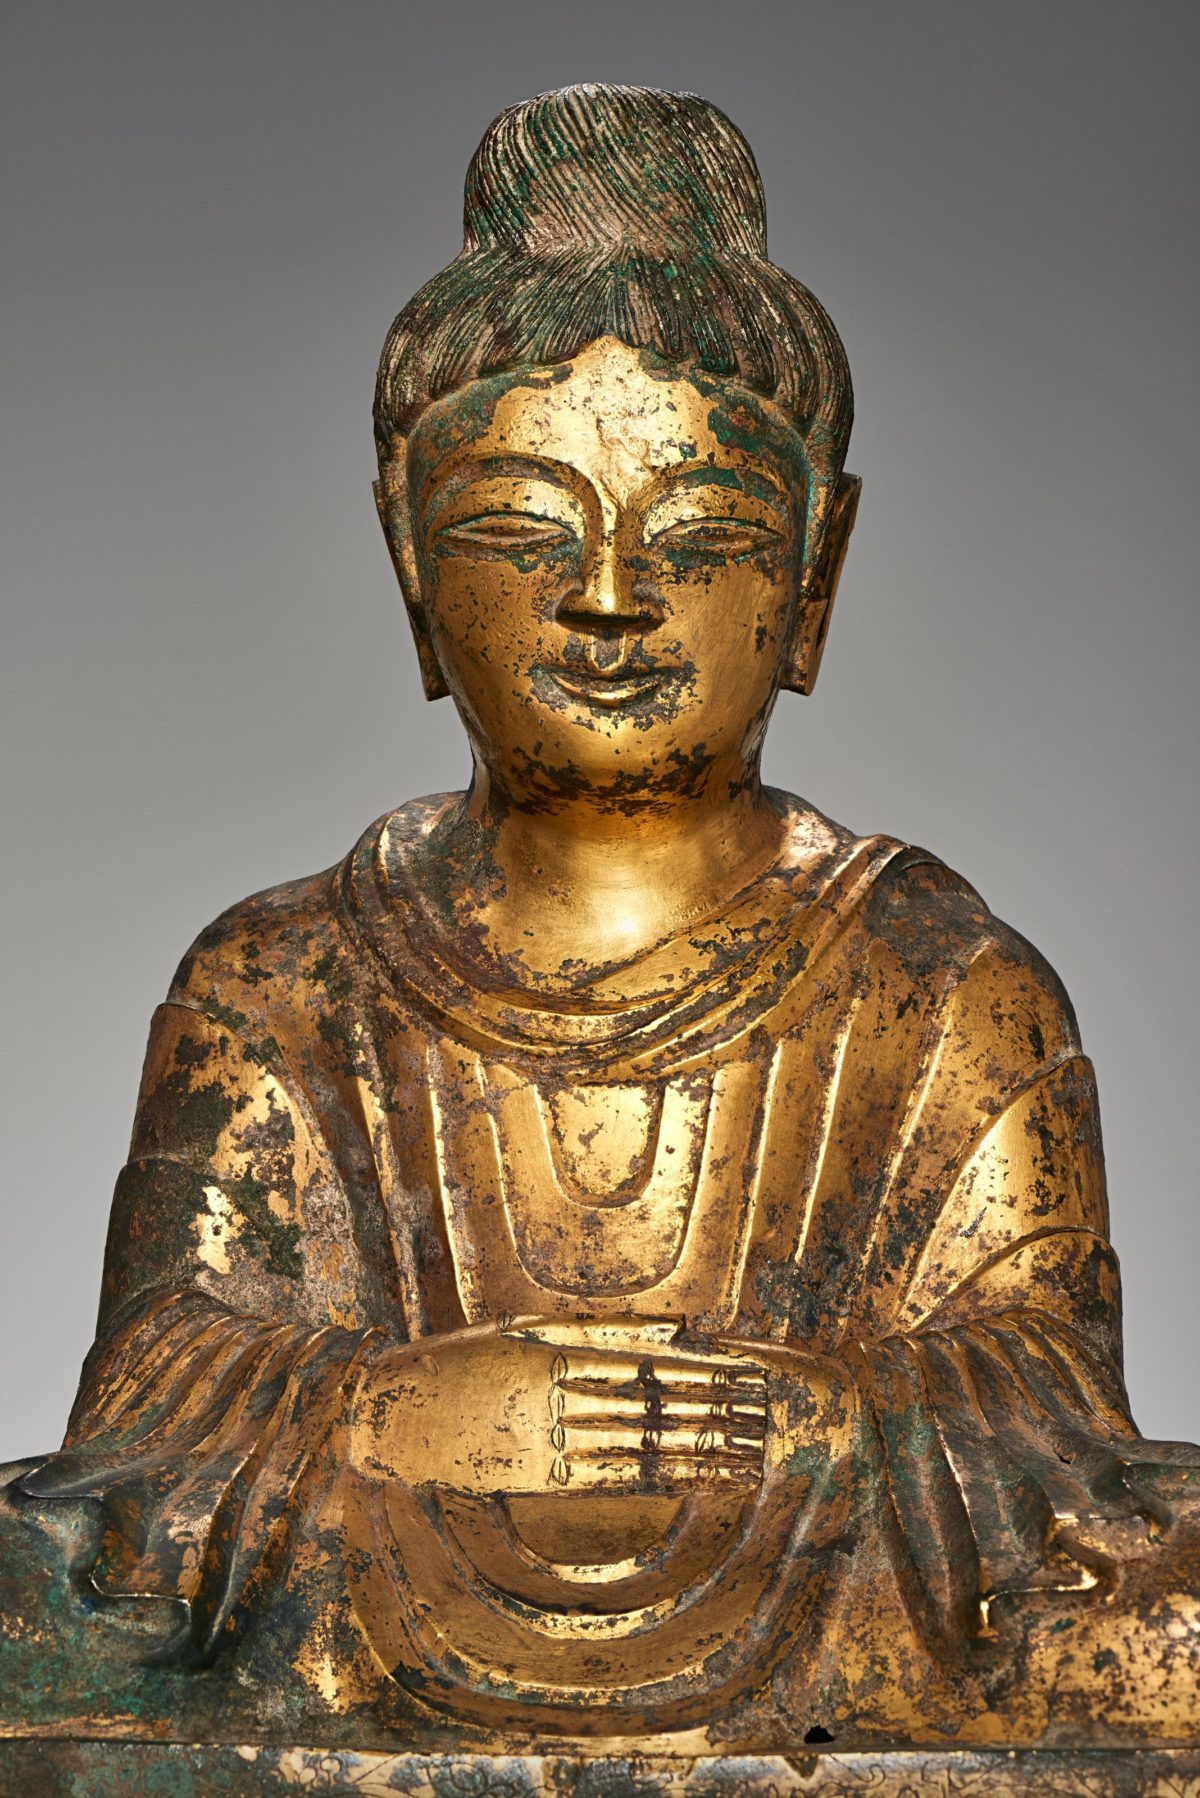 Face and shoulders, and body of a golden Buddha statue.